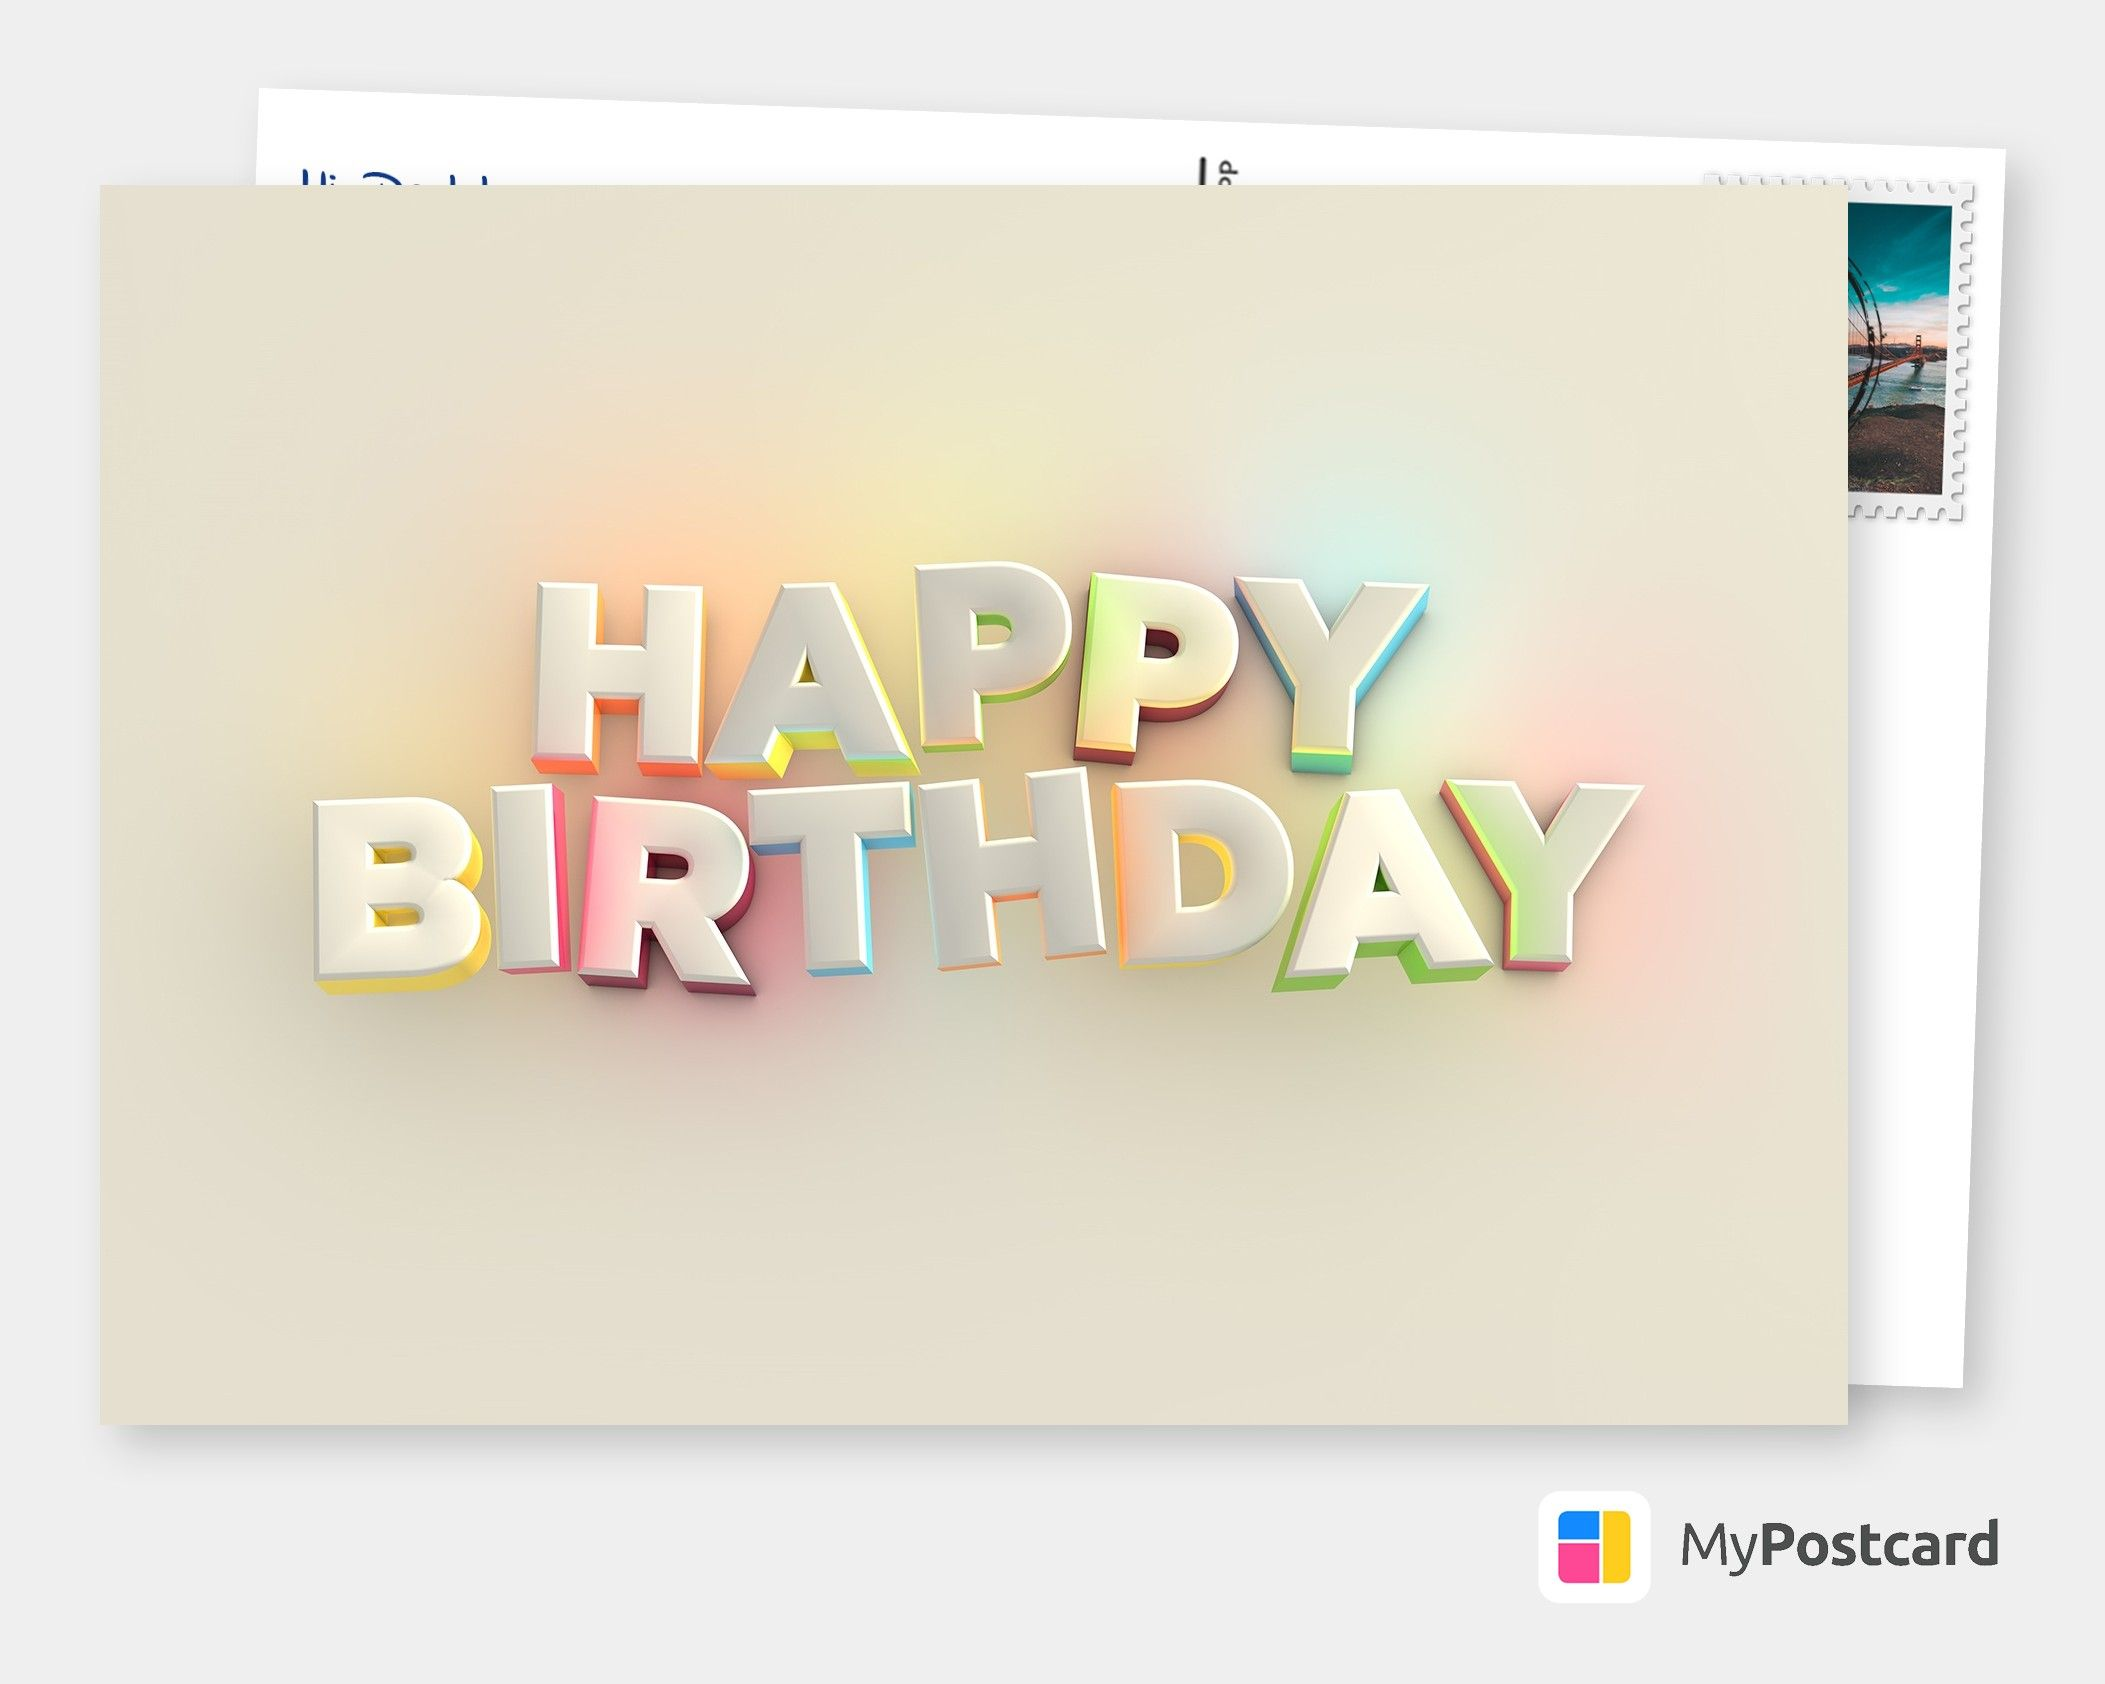 Printable Birthday Cards Send Your Cards Online Printed Mailed For You Internationally Make Create Your Own Birthday Cards Online Geburtstagspostkarten Geburtstagskarte Happy Birthday Karte